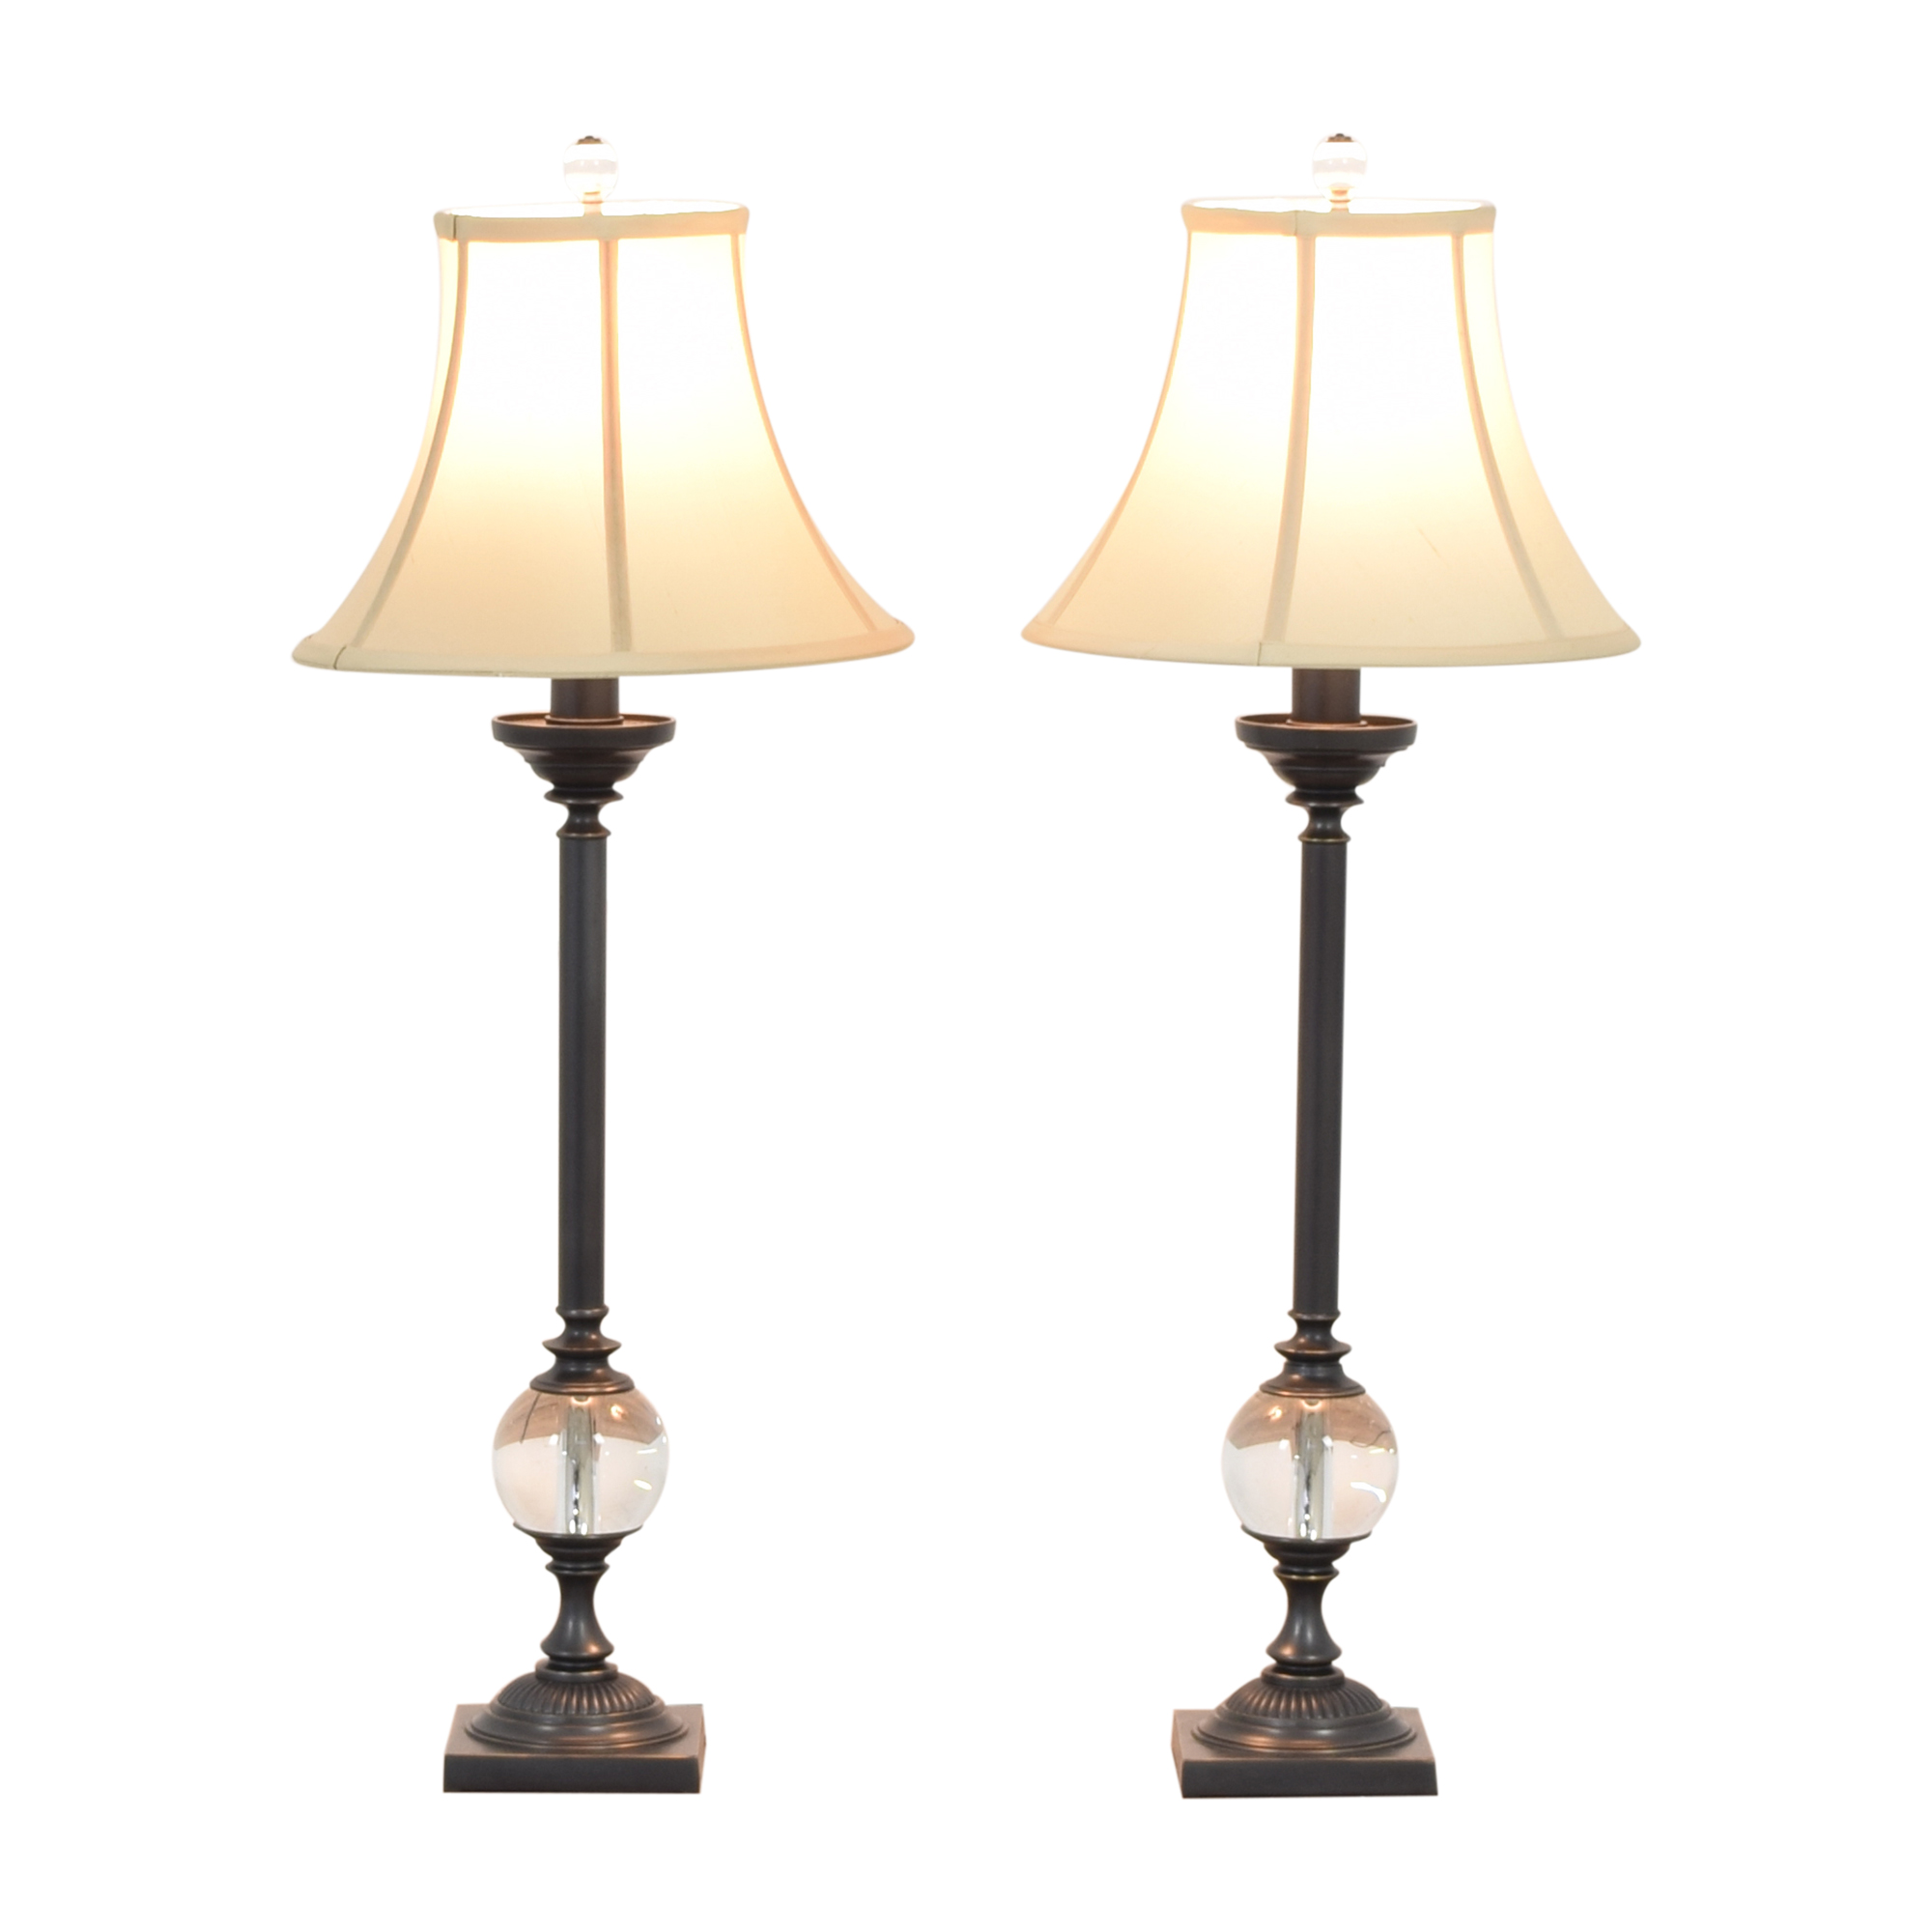 Restoration Hardware Restoration Hardware Crystal Ball Table Lamps nyc